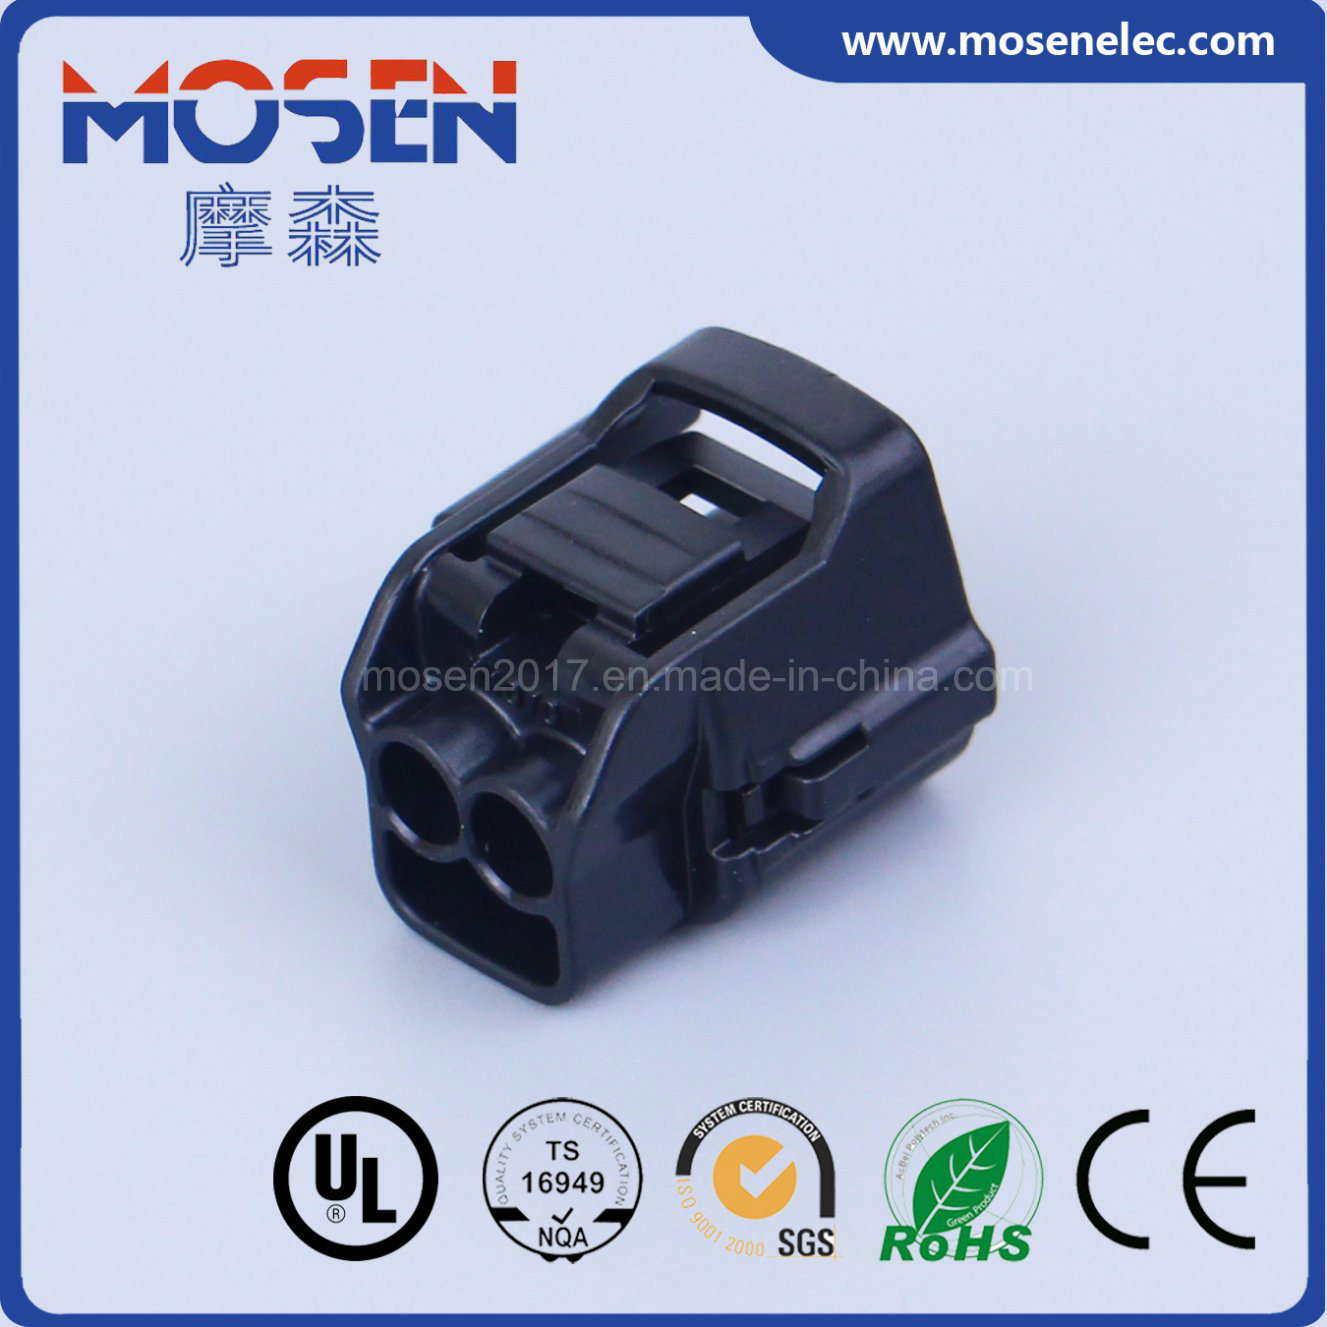 High Voltage Wire Harness Yazaki Free Download Automotive Connectors Images Of China Wiring Connector Logo At